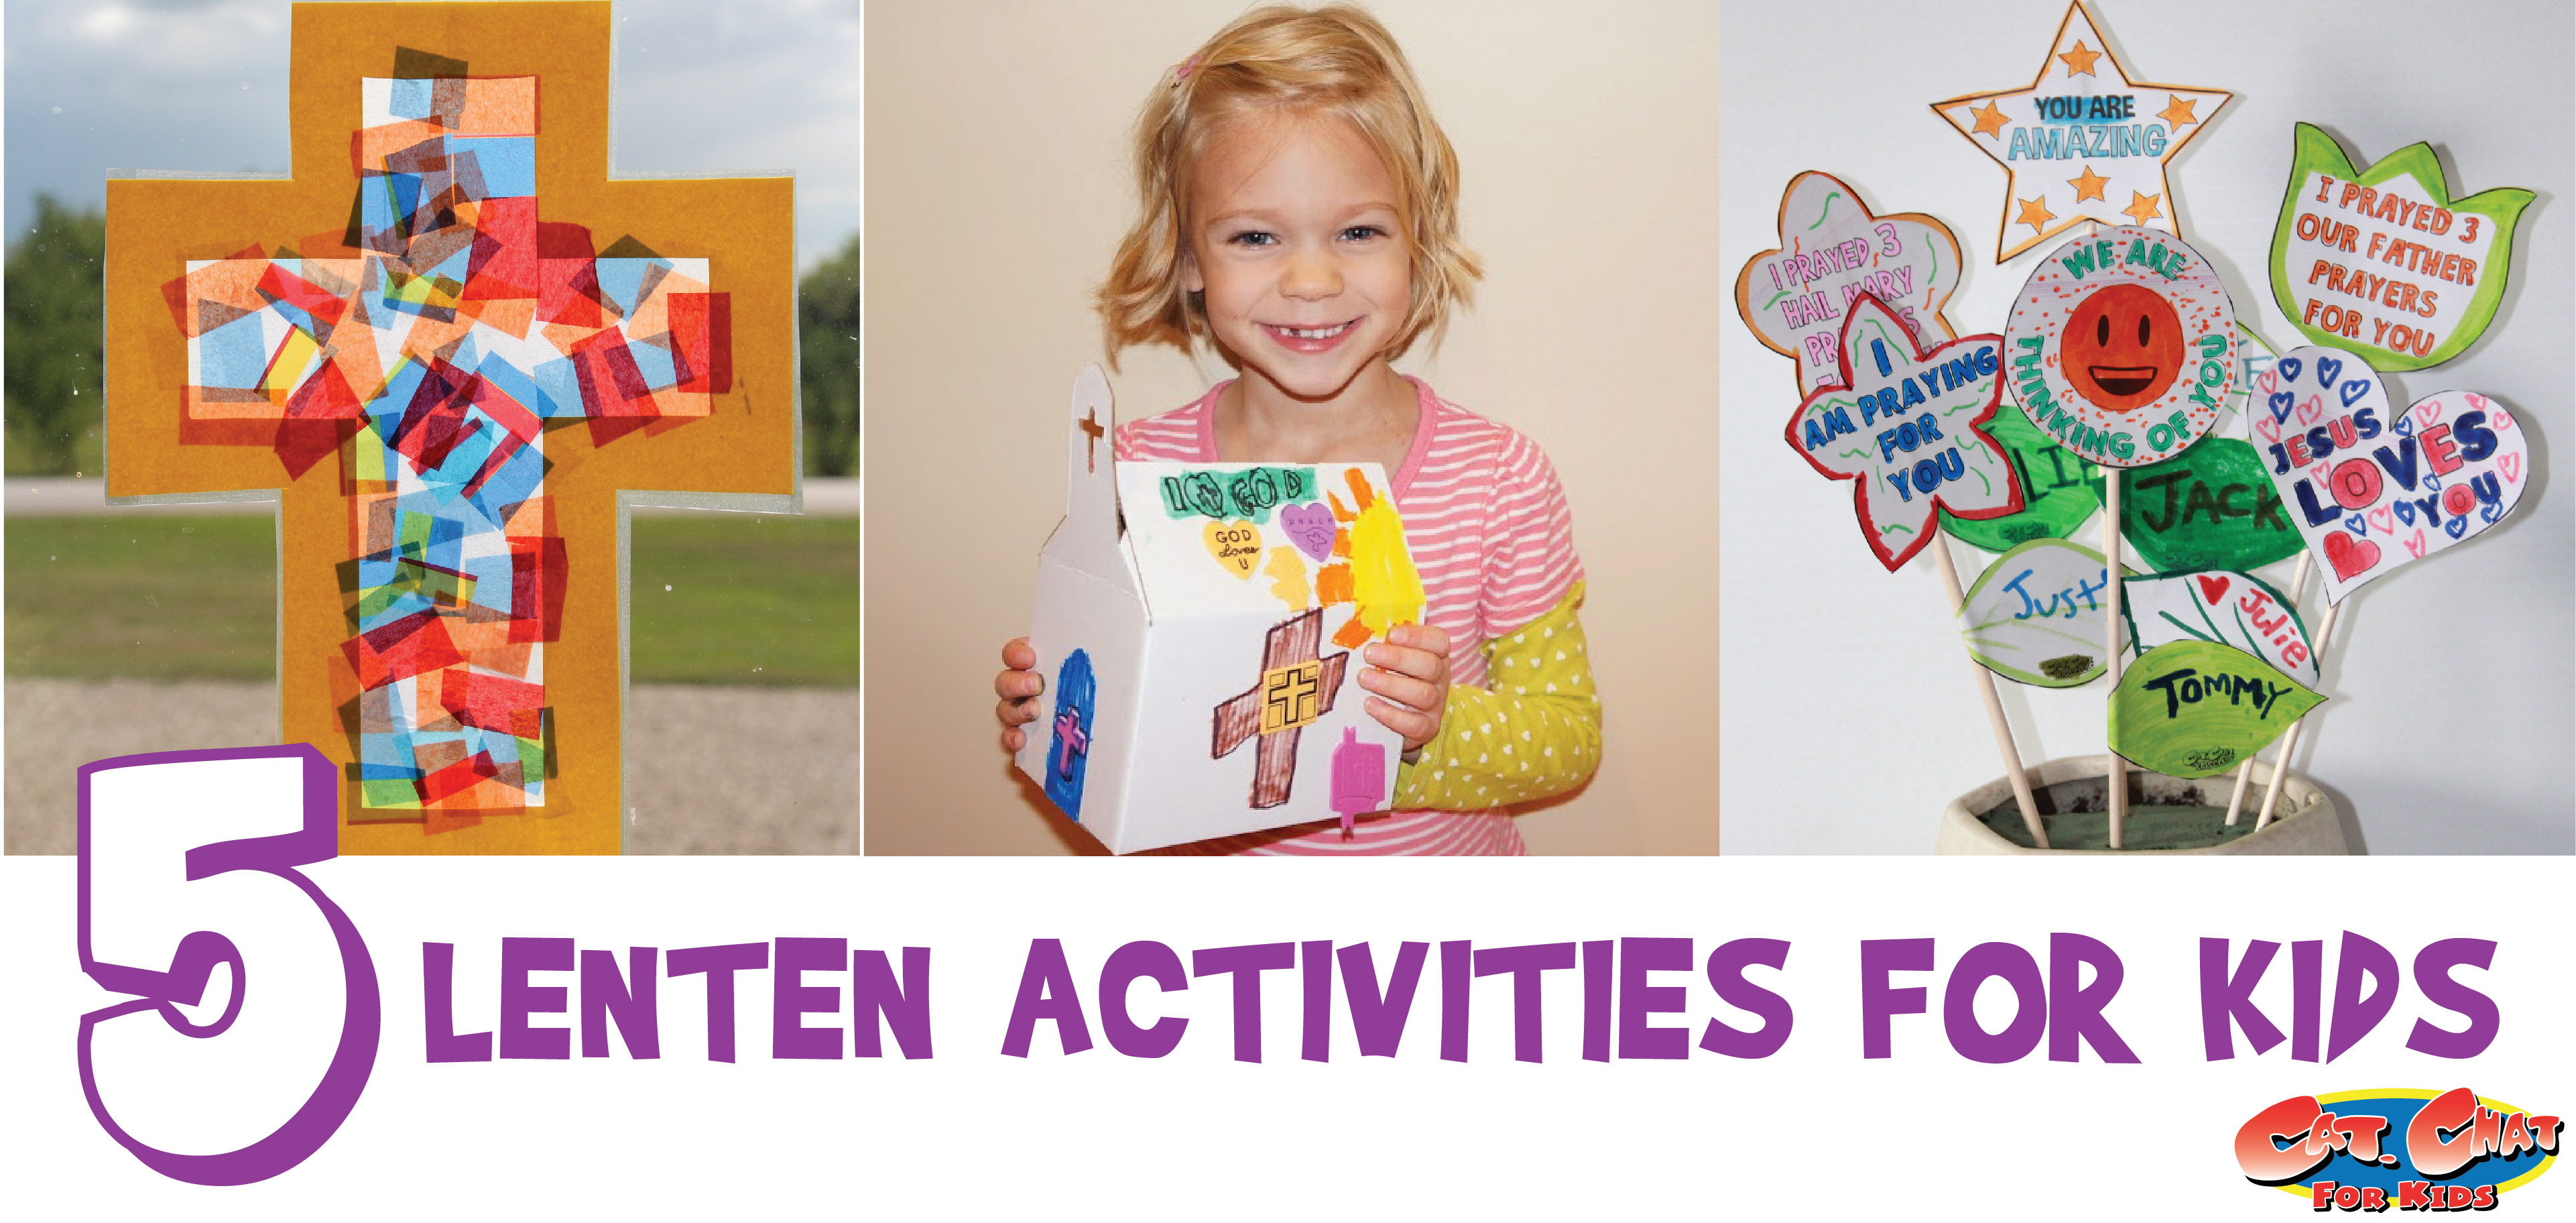 Lenten activities for kids